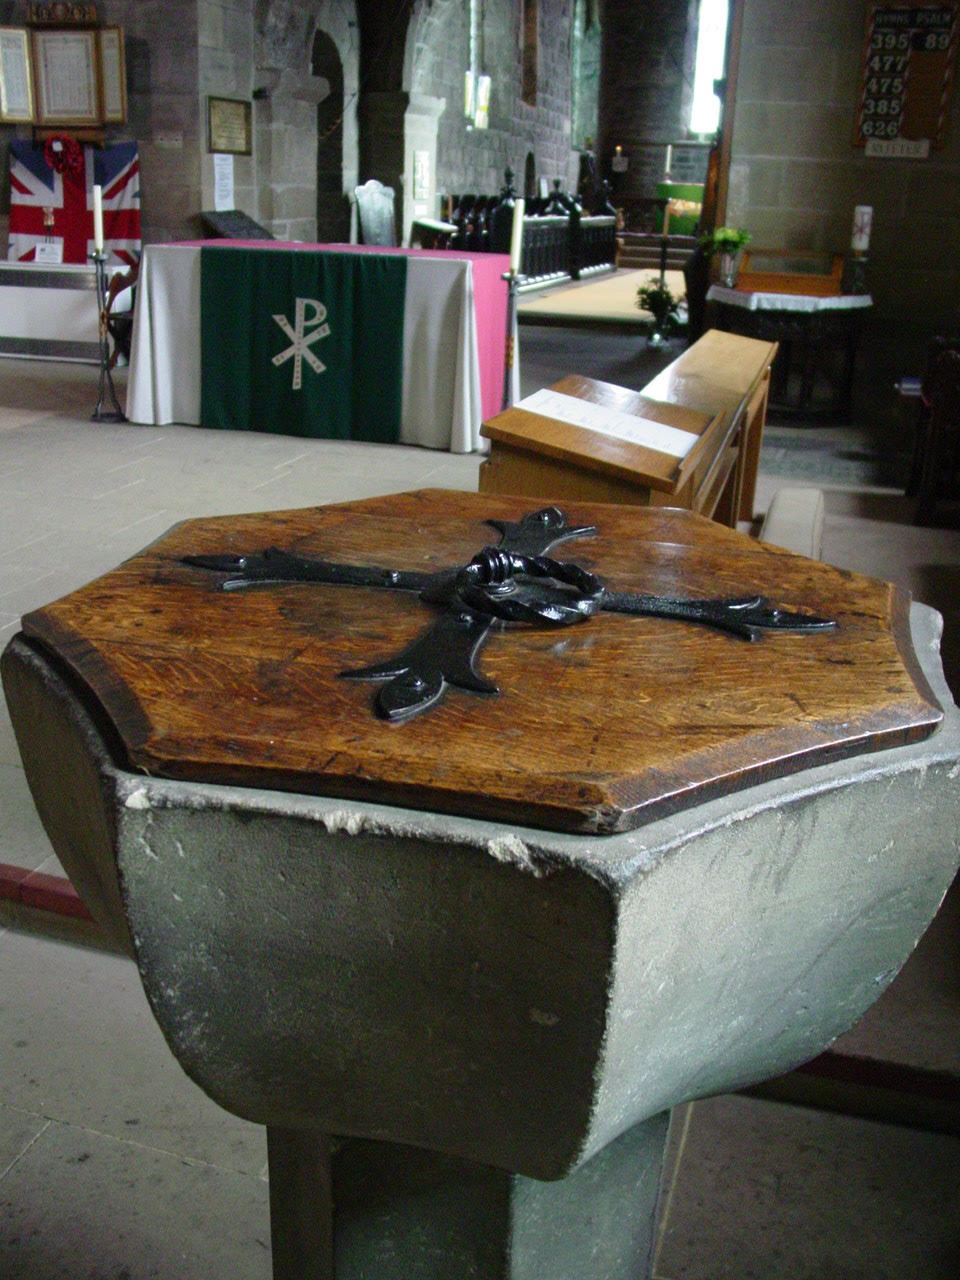 Baptismal font at St Paul's, Jarrow